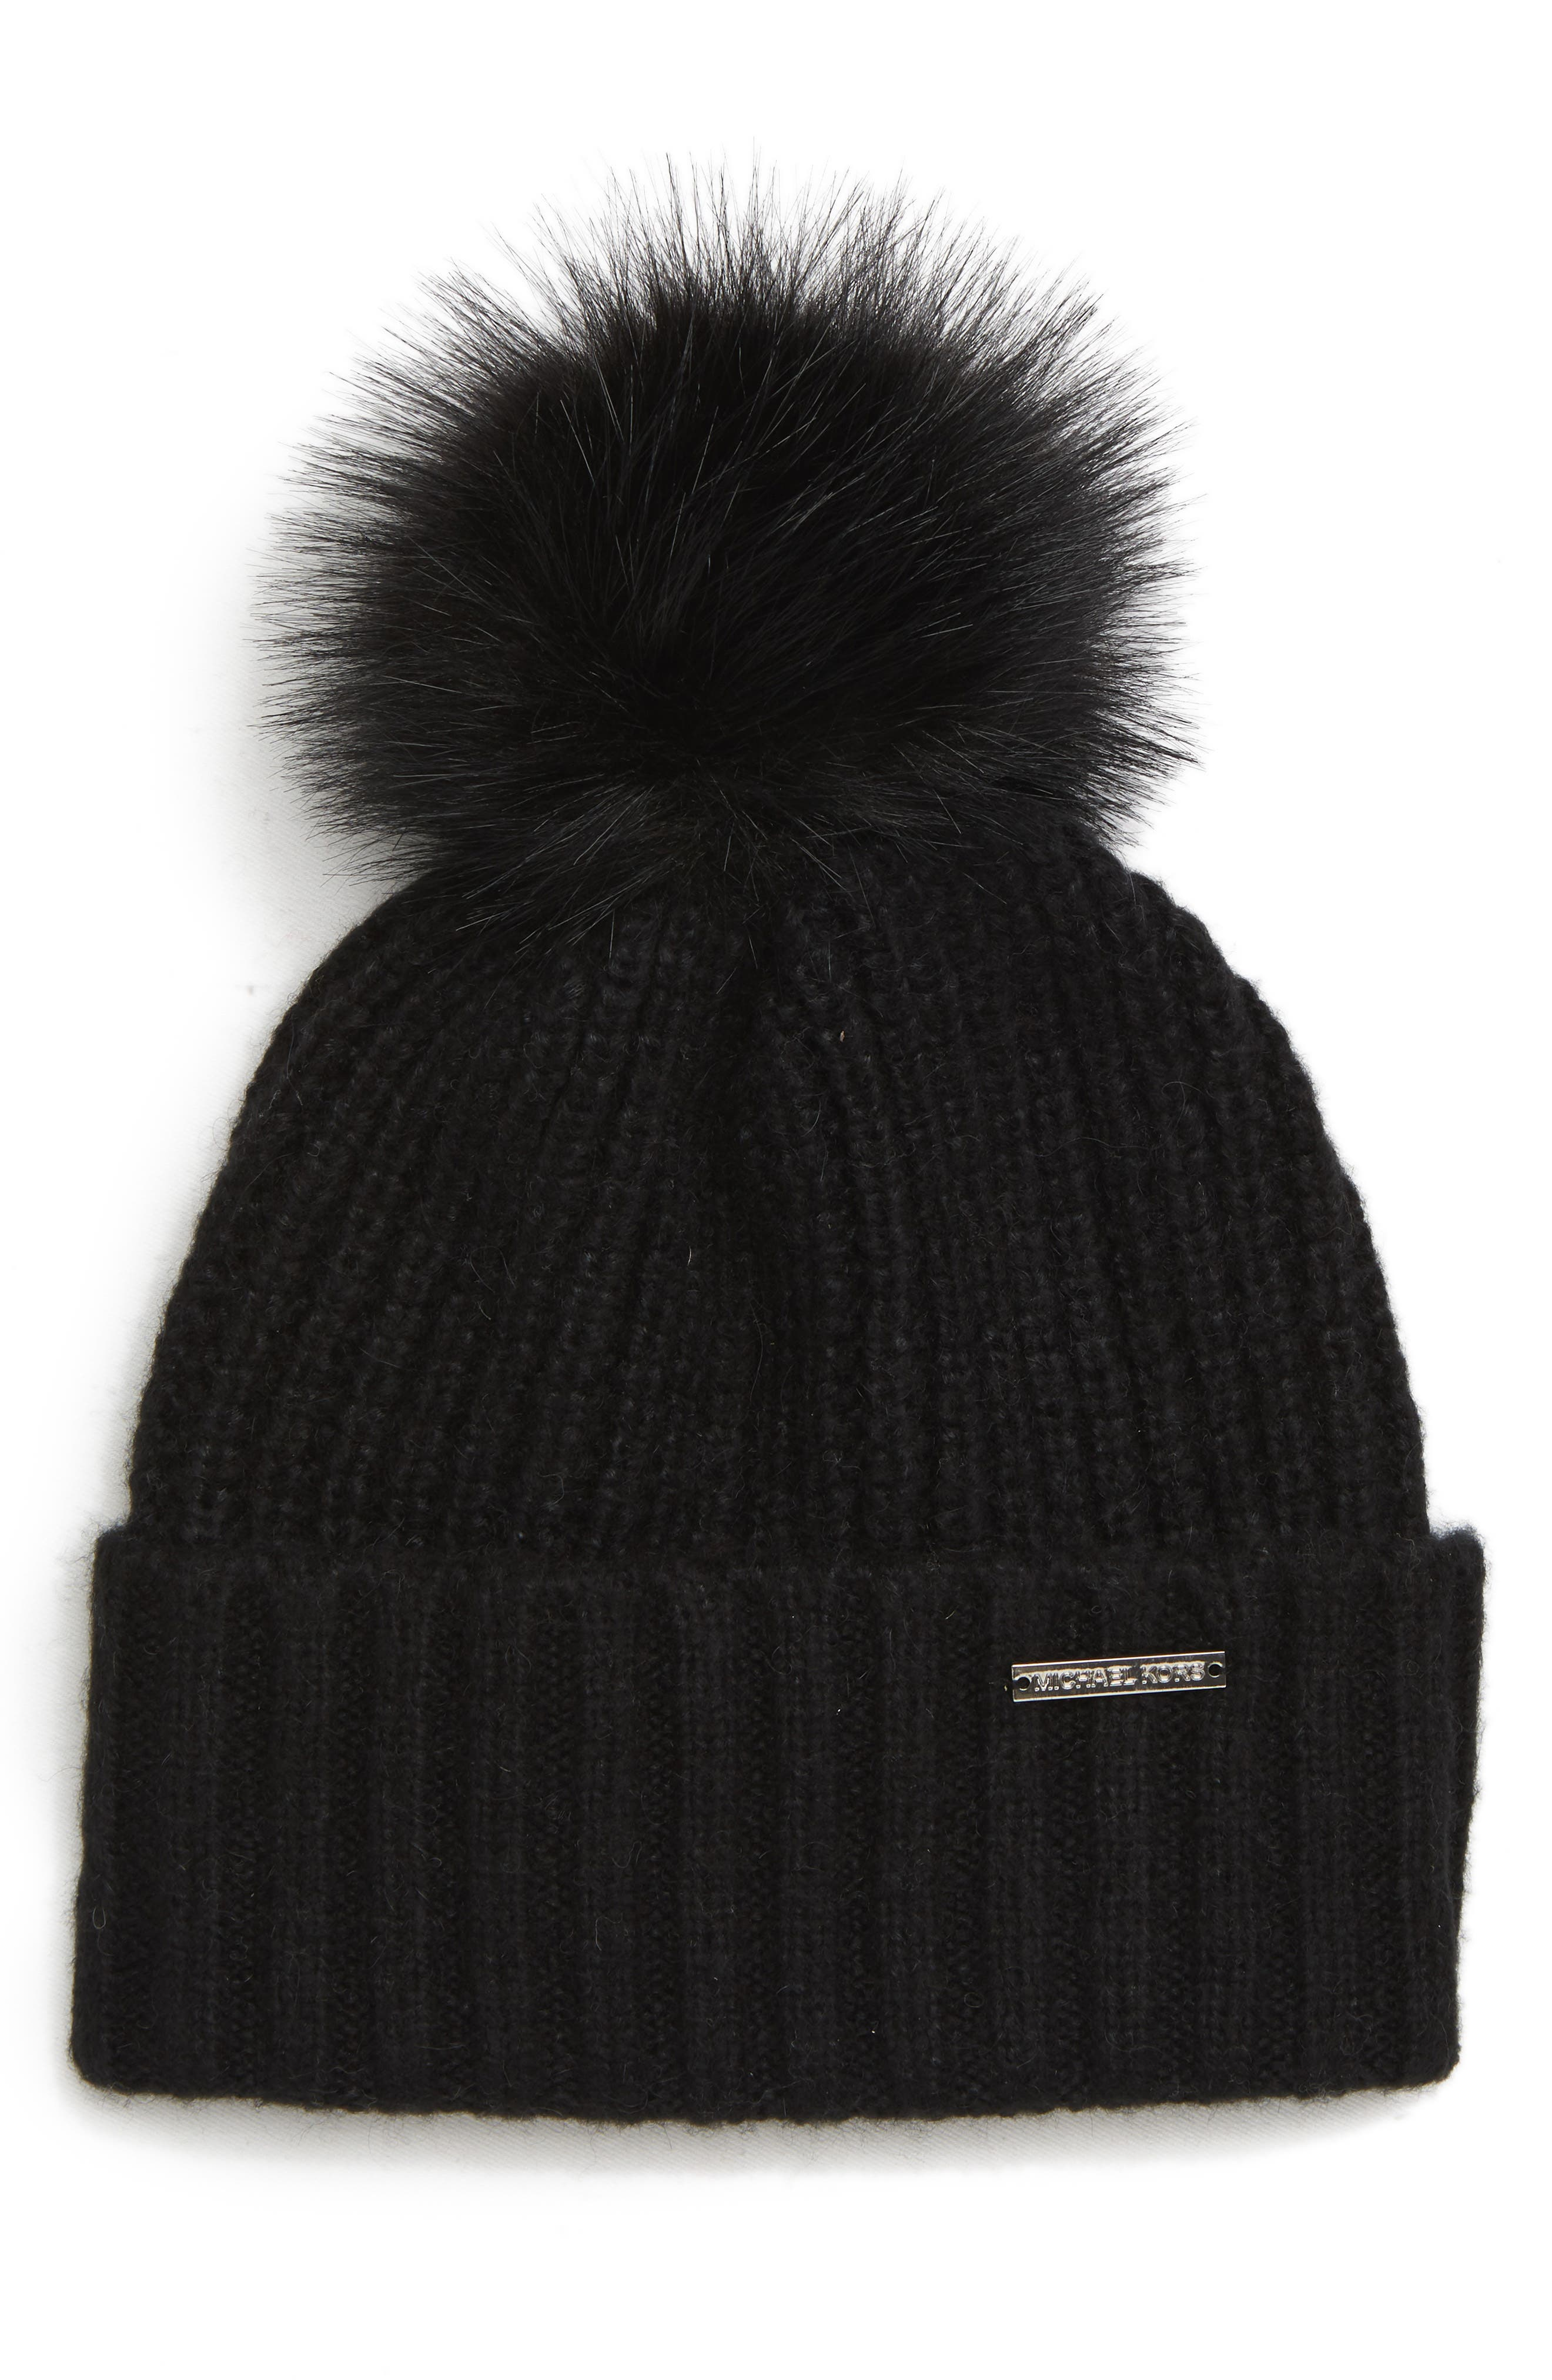 Thermal Stitch Hat,                         Main,                         color, 001